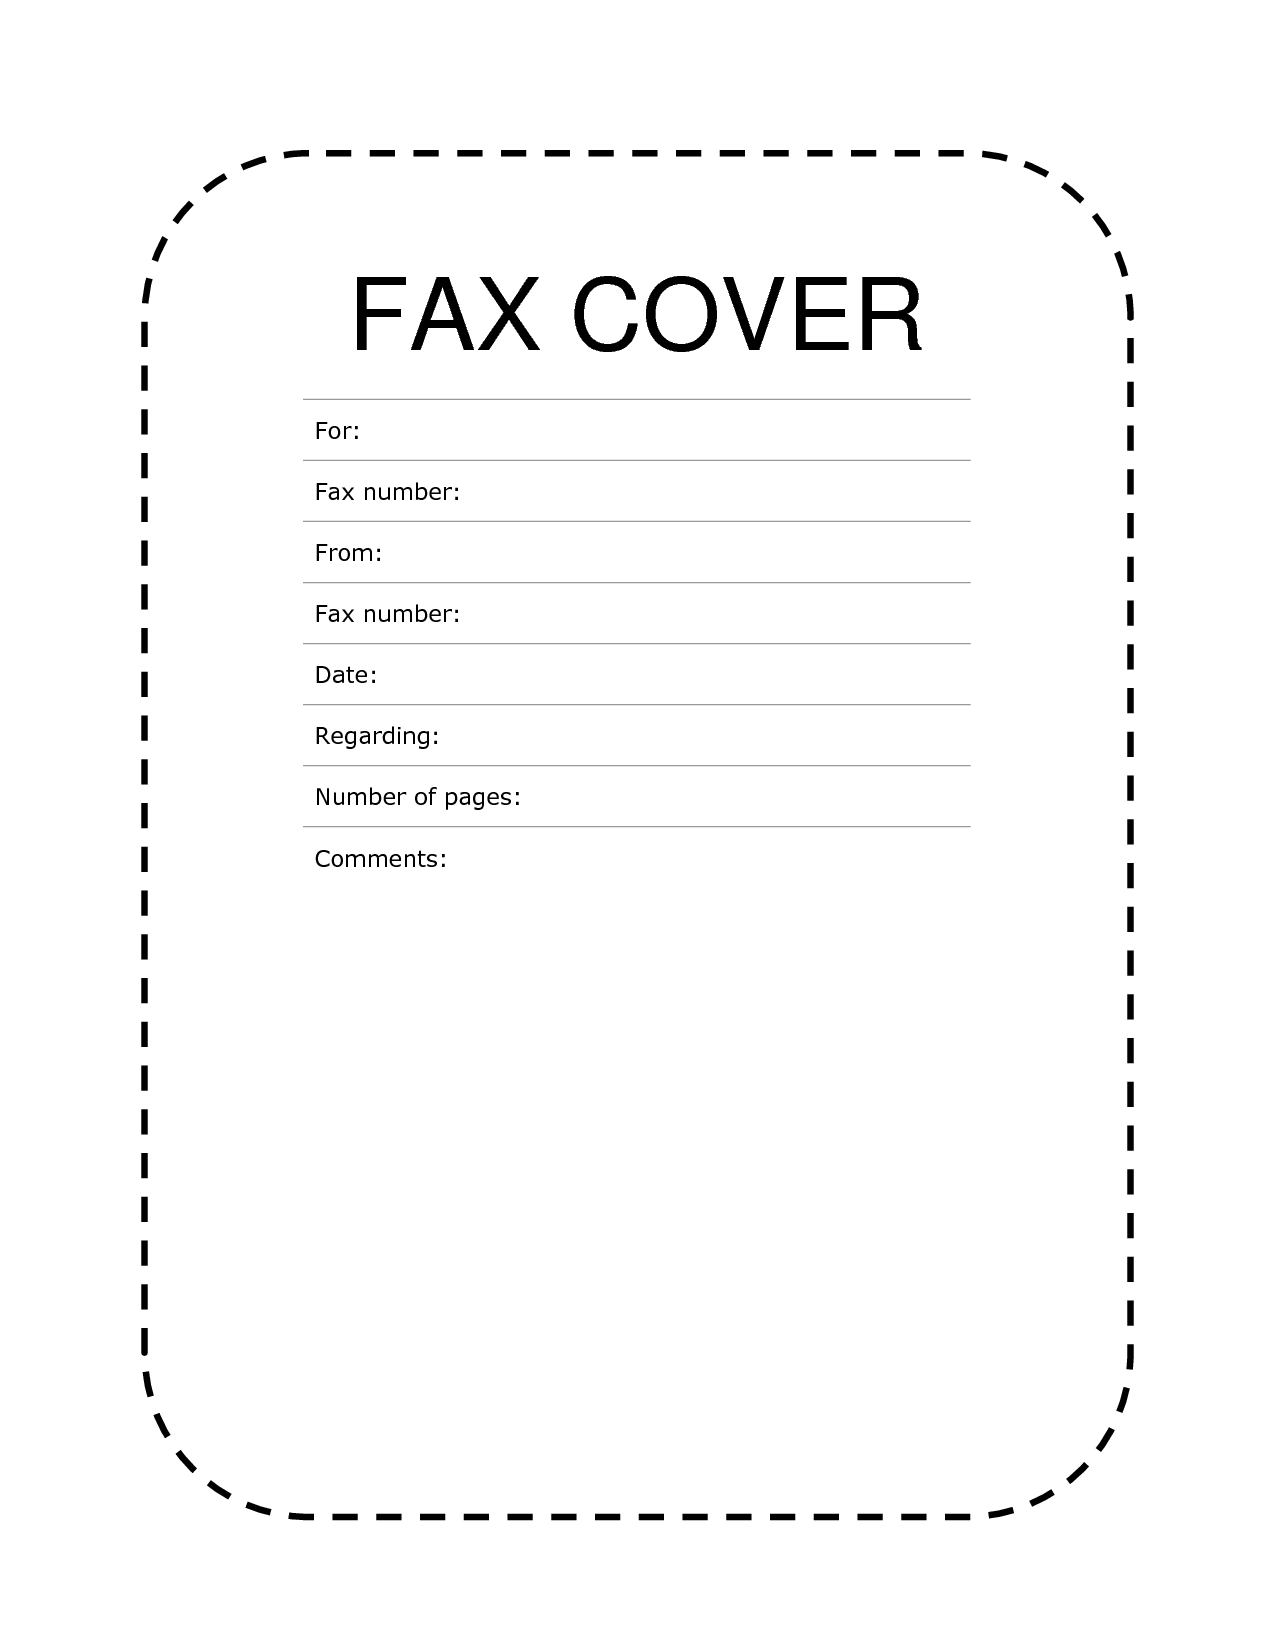 Free Fax Cover Sheet Template Format Example Pdf Printable | Fax - Free Printable Fax Cover Page